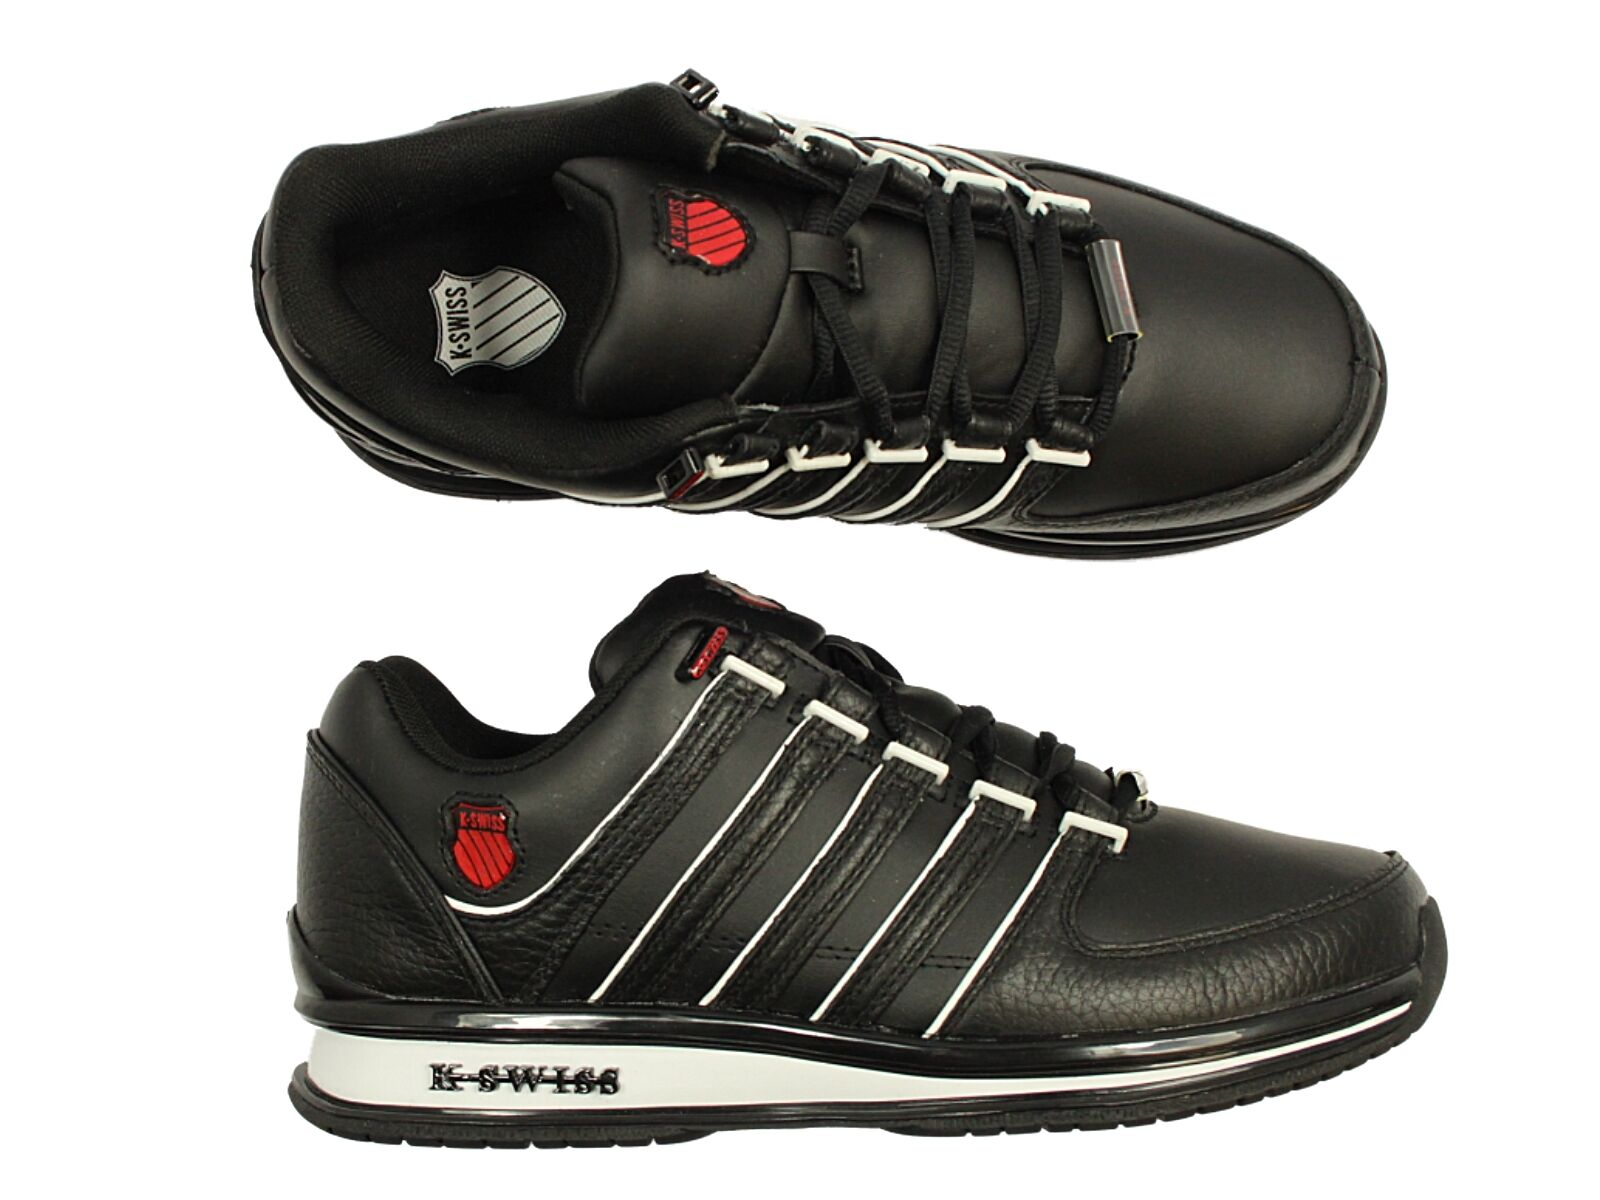 K SWISS BLACK BNWT TRAINERS RINZLER LACE UP DESIGNER Weiß BLACK SWISS GREY CLEARANCE PRICE 14d65c